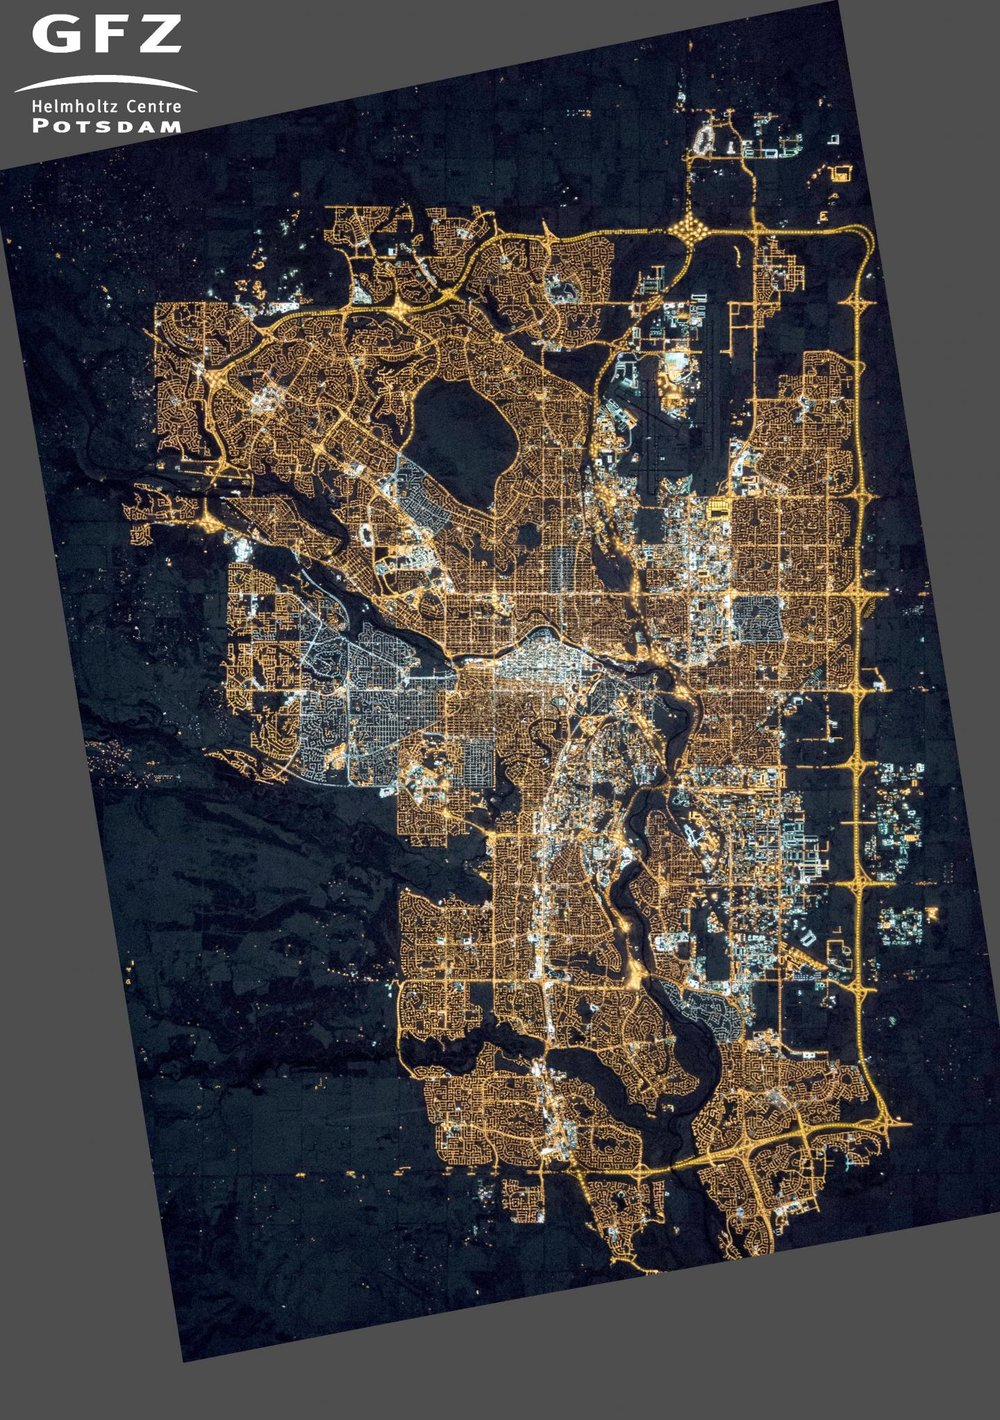 Photograph of Calgary, Alberta, Canada, taken from the International Space Station on Nov. 27th, 2015. - Image Credit: NASA's Earth Observatory/Kyba, GFZ